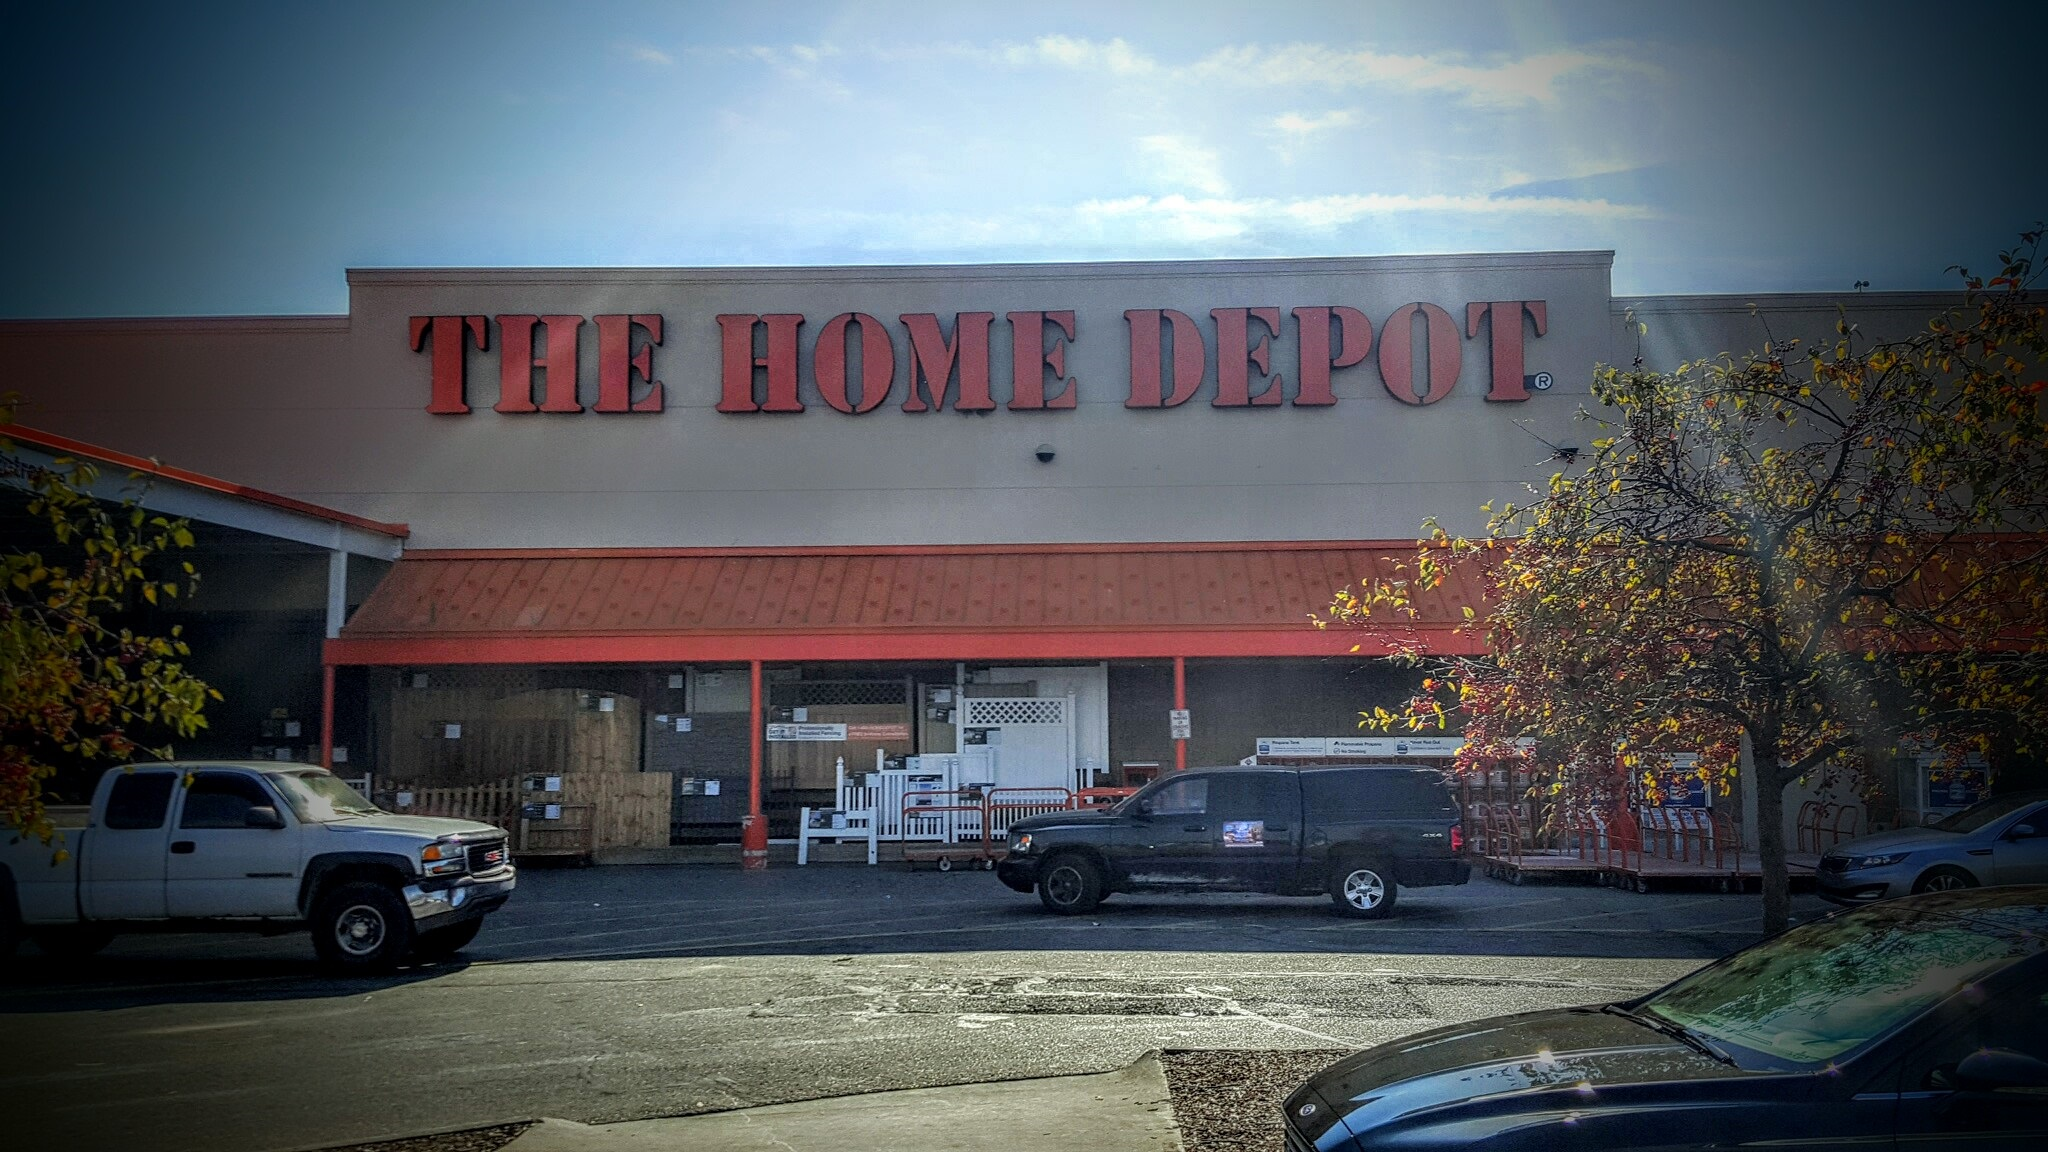 The home depot in detroit mi whitepages for Motor city soul food southfield michigan